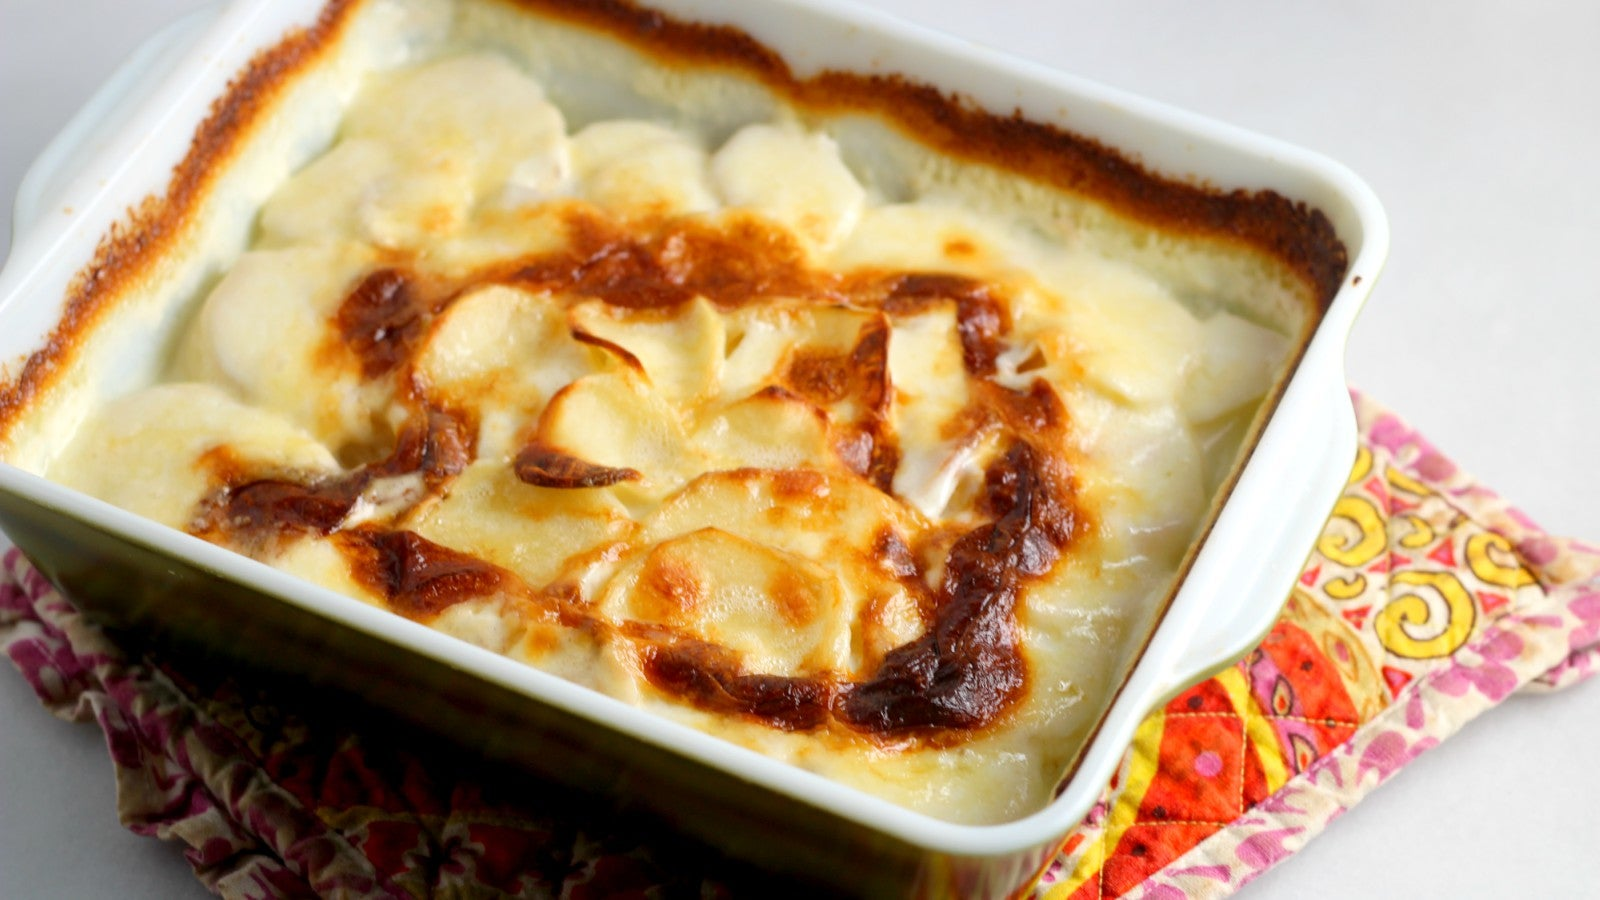 The Best Potatoes Au Gratin Don't Contain Any Cheese